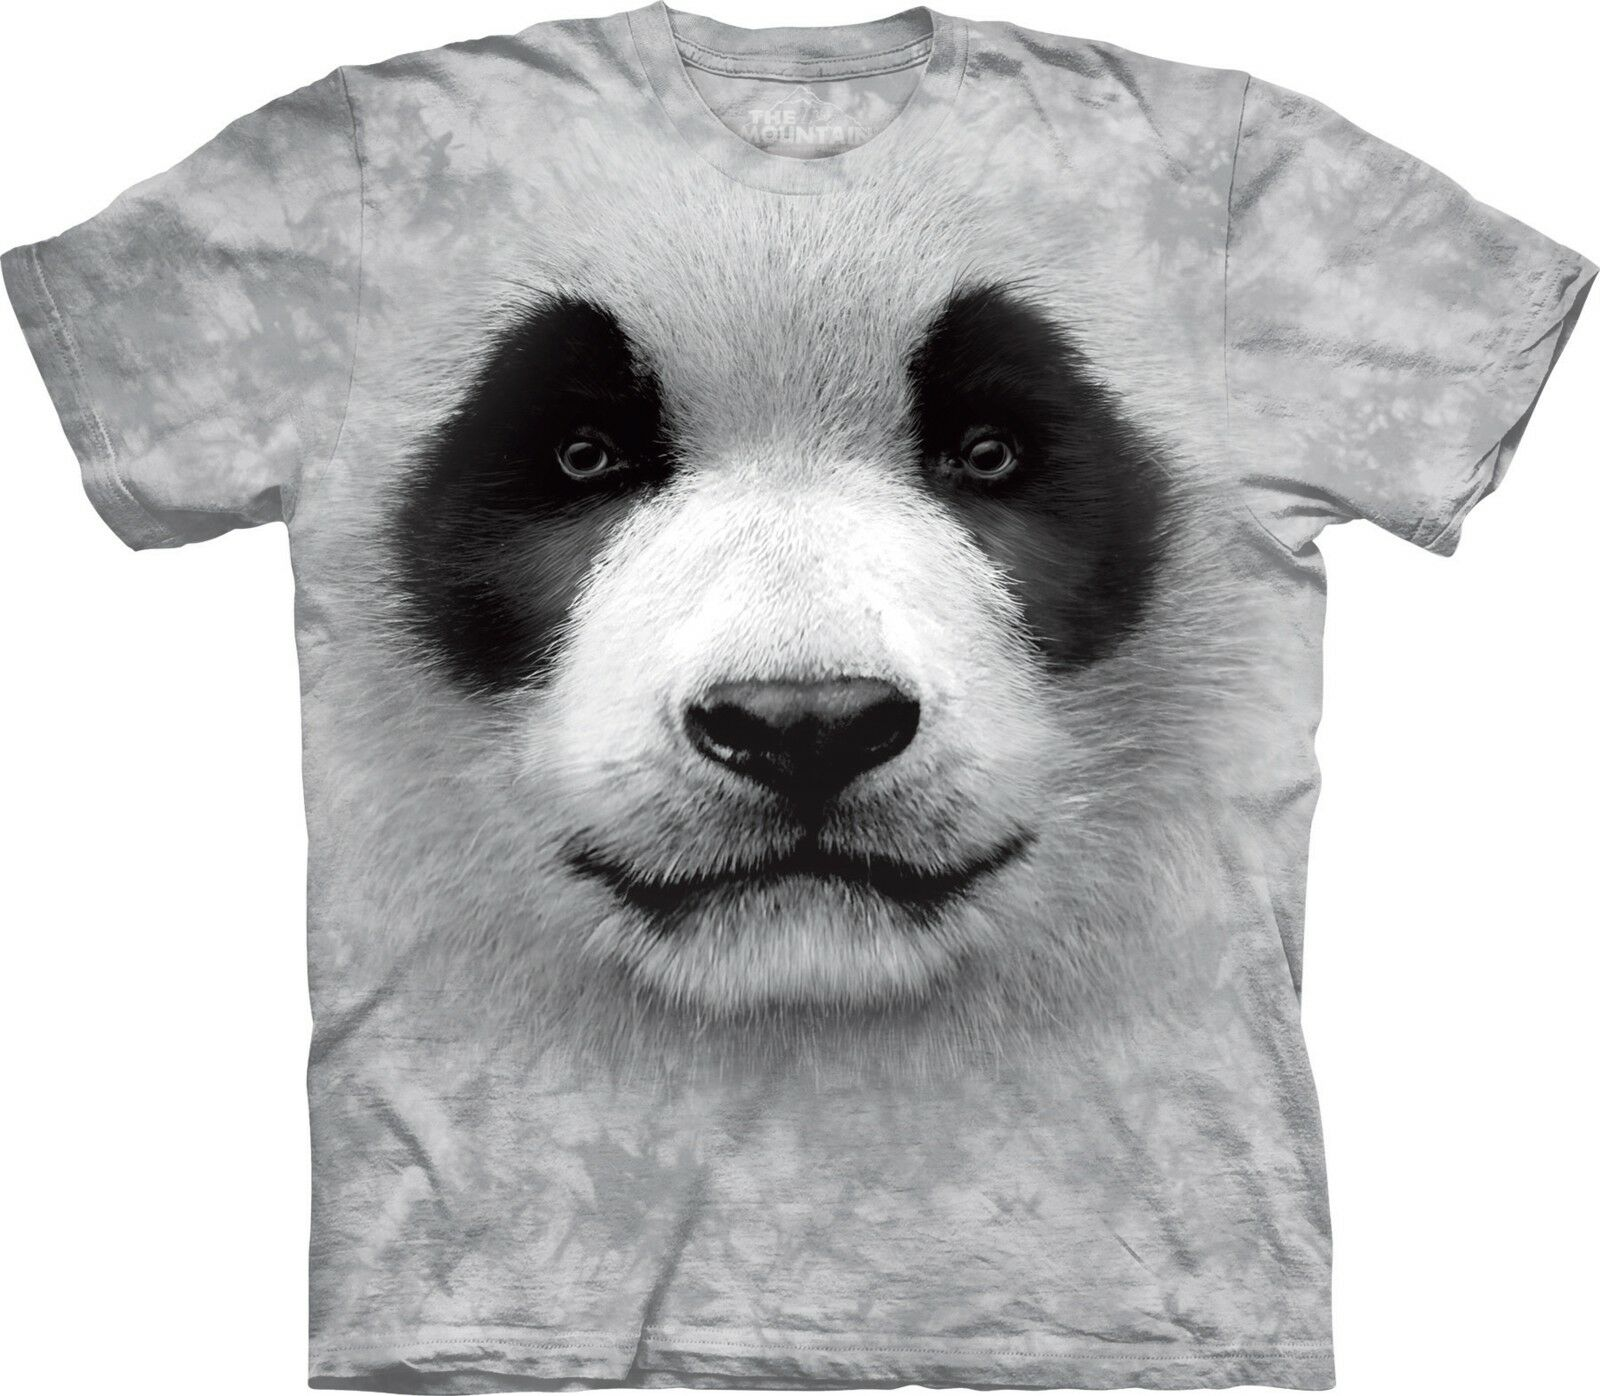 Big Face Panda Animal T Shirt Adult Unisex The Mountain